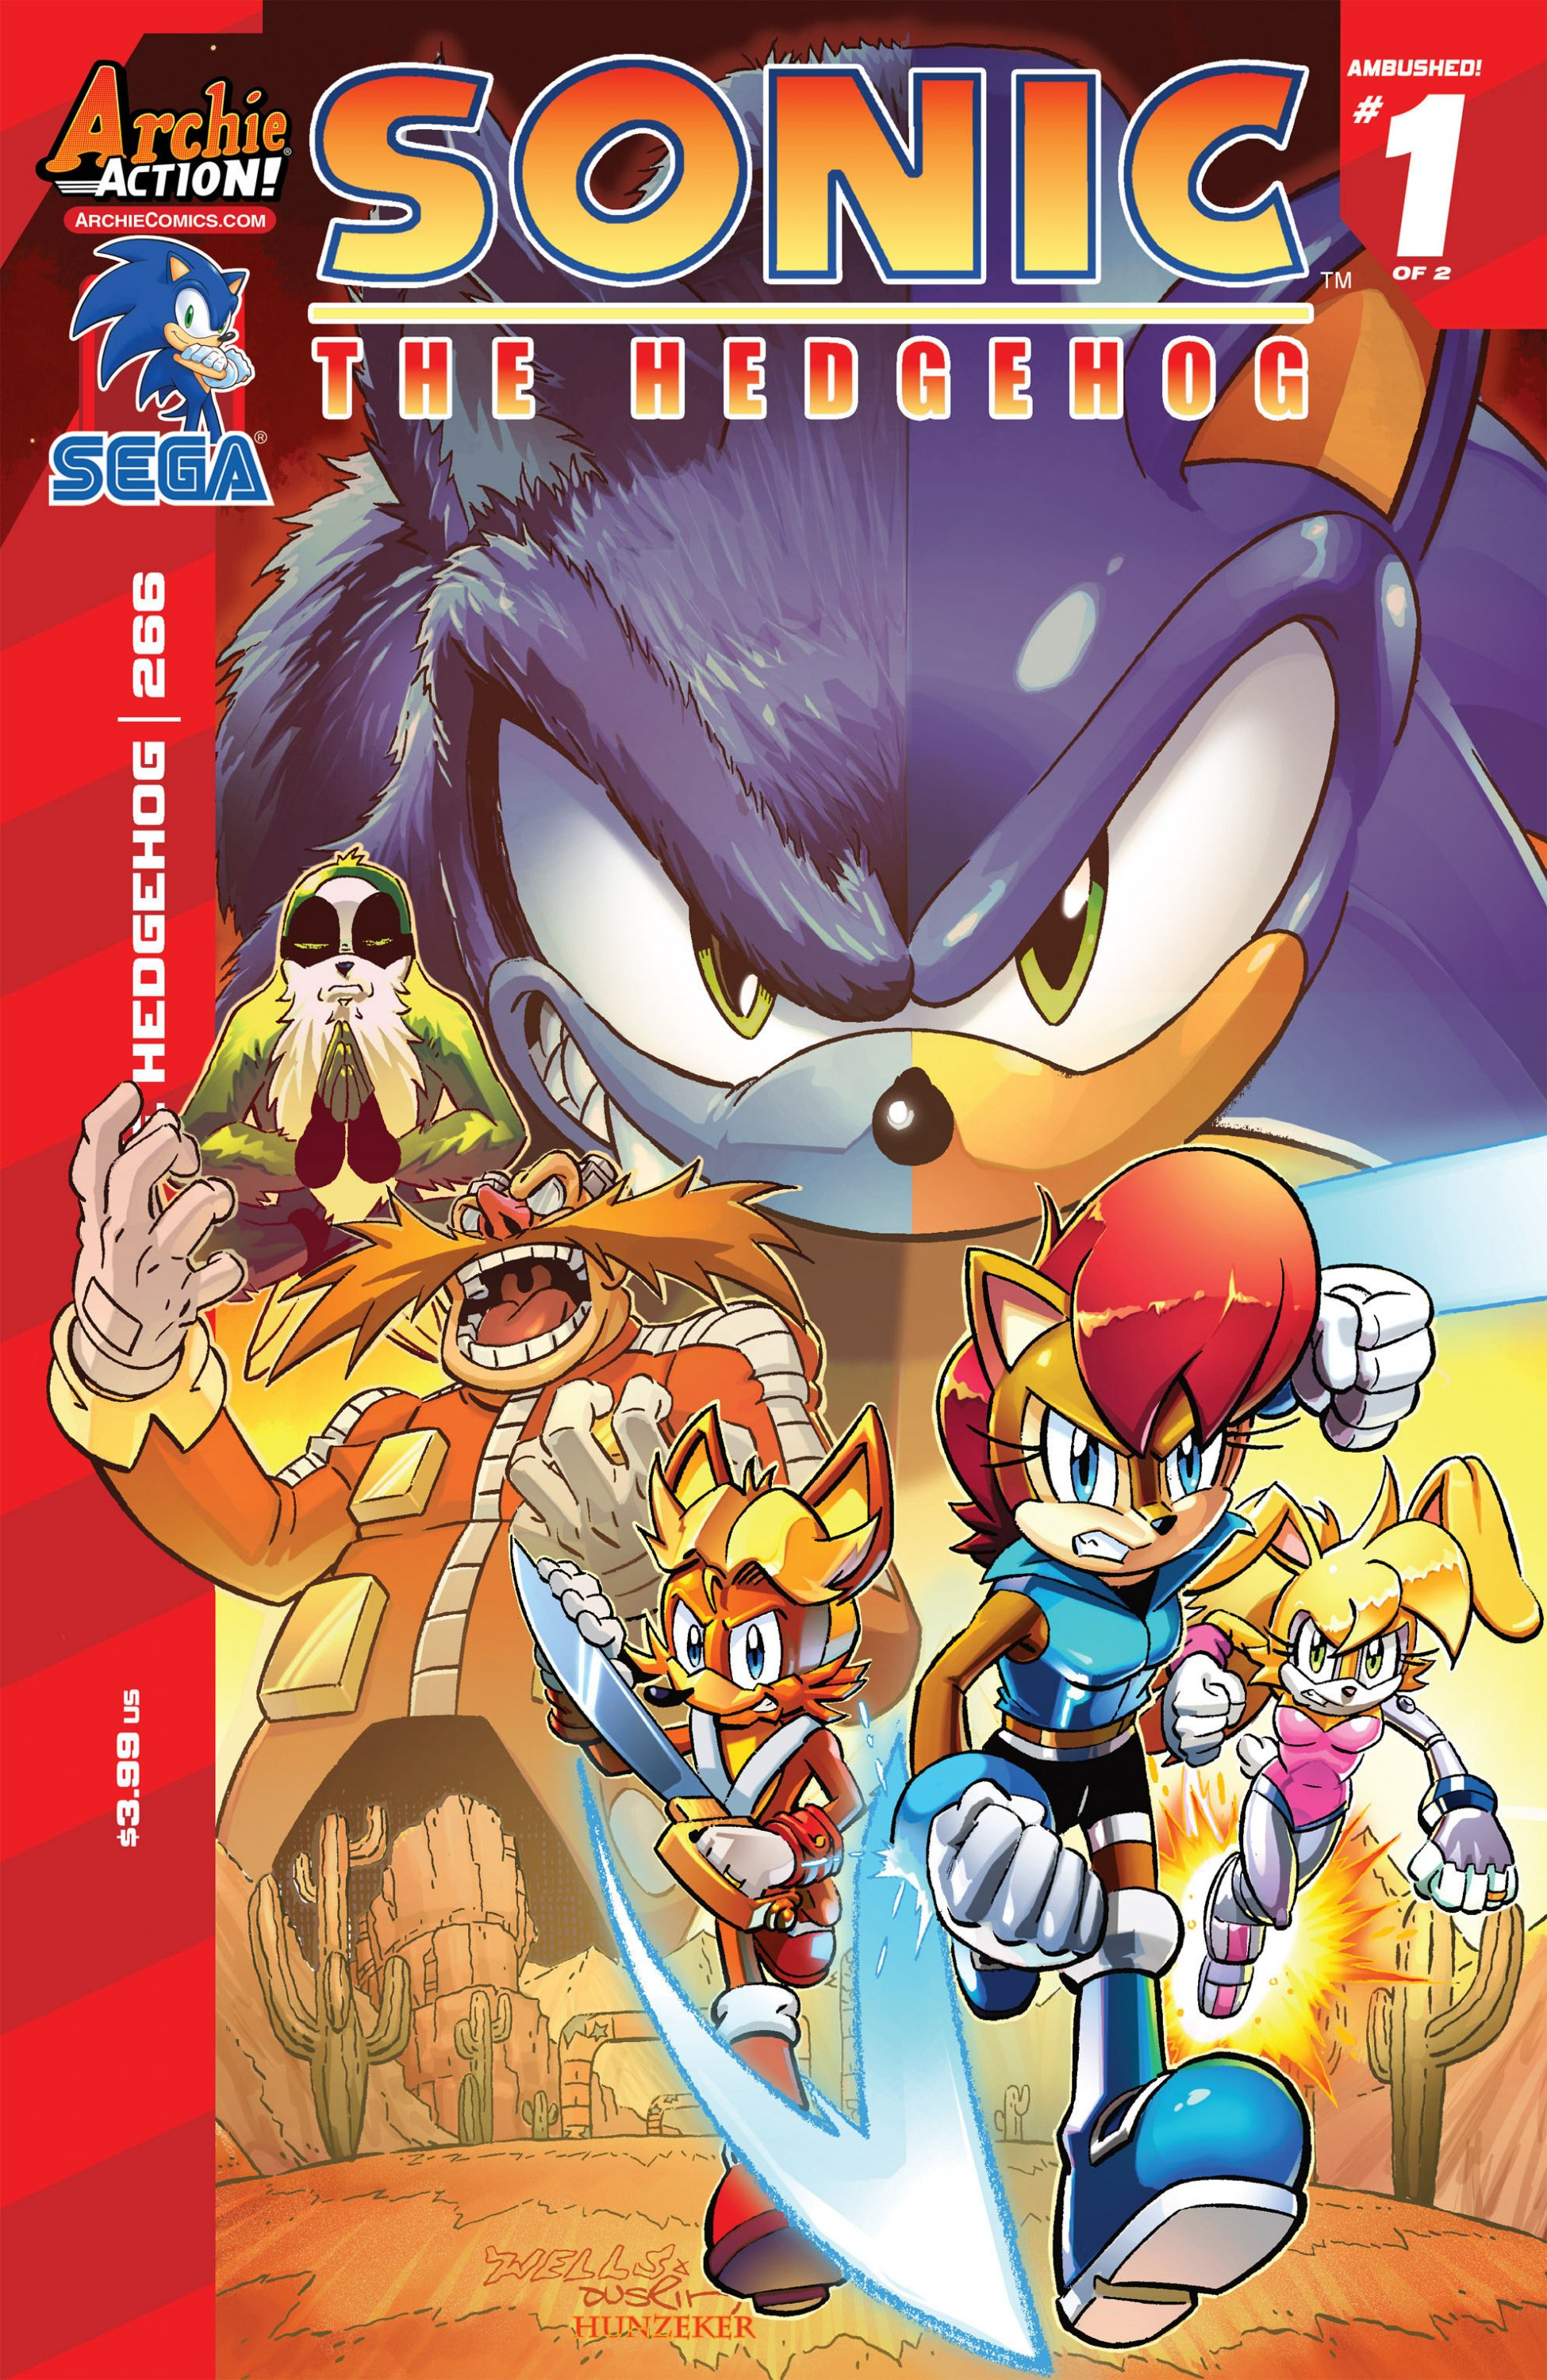 Sonic the Hedgehog 266 (January 2015)